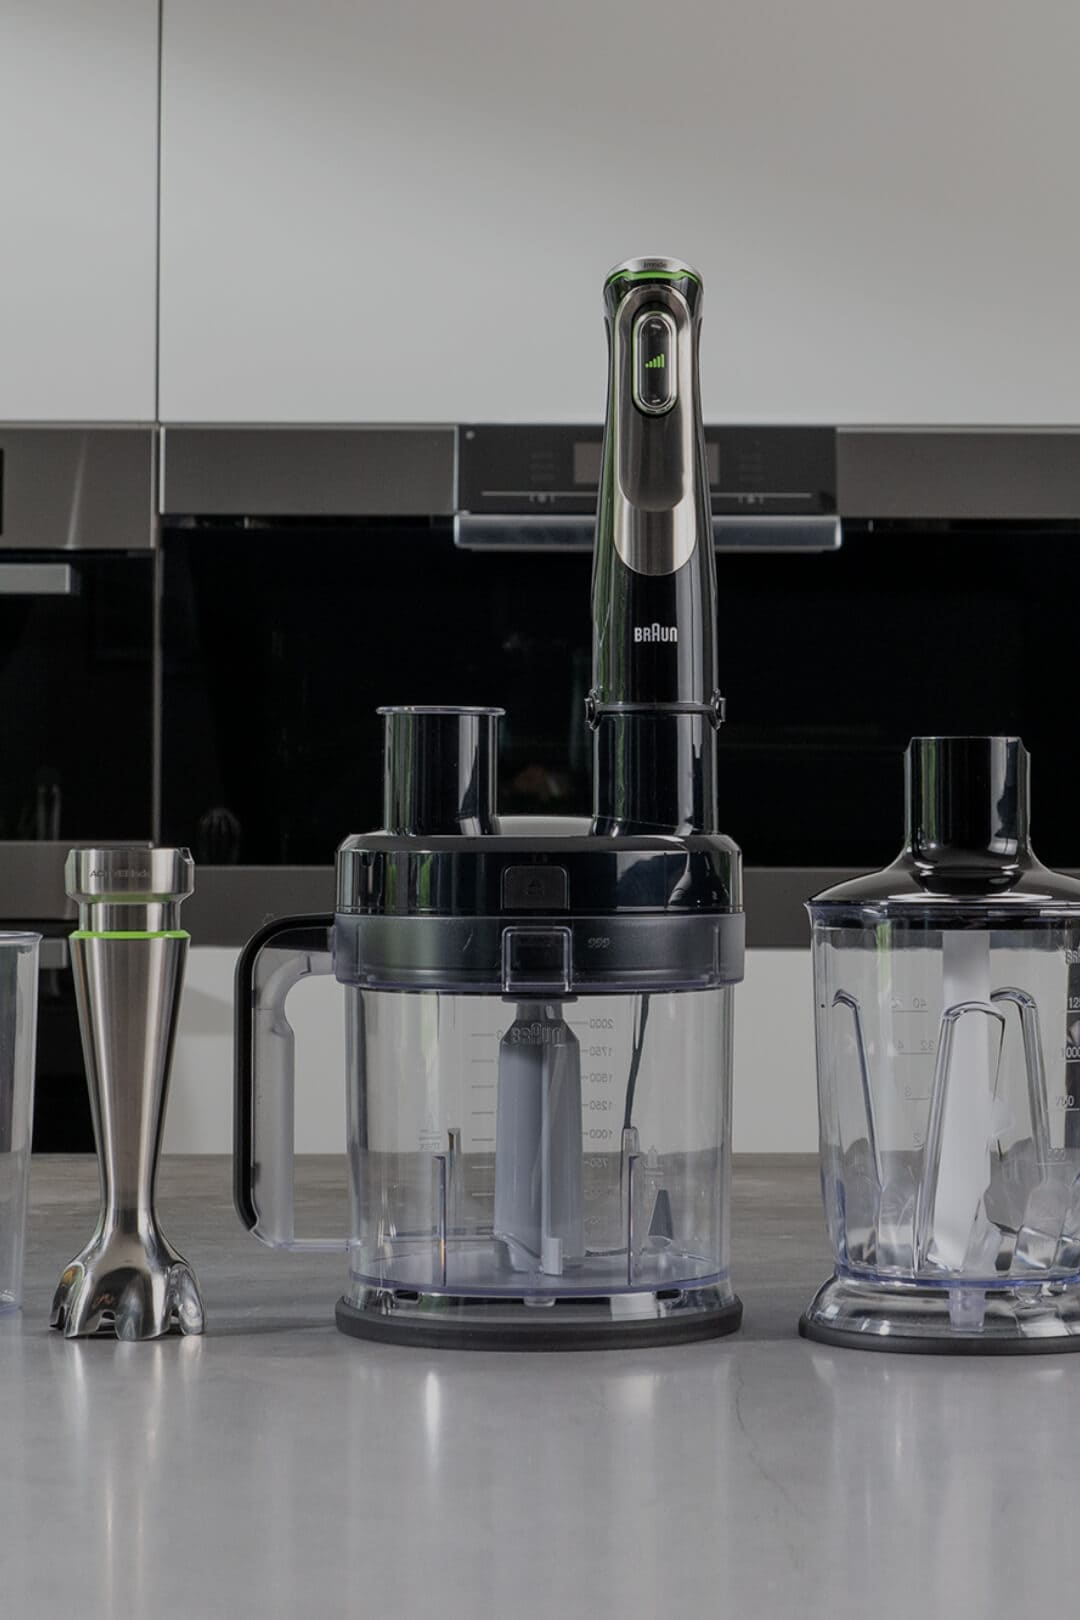 Braun MultiQuick 9X Hand blender with ground-breaking technology